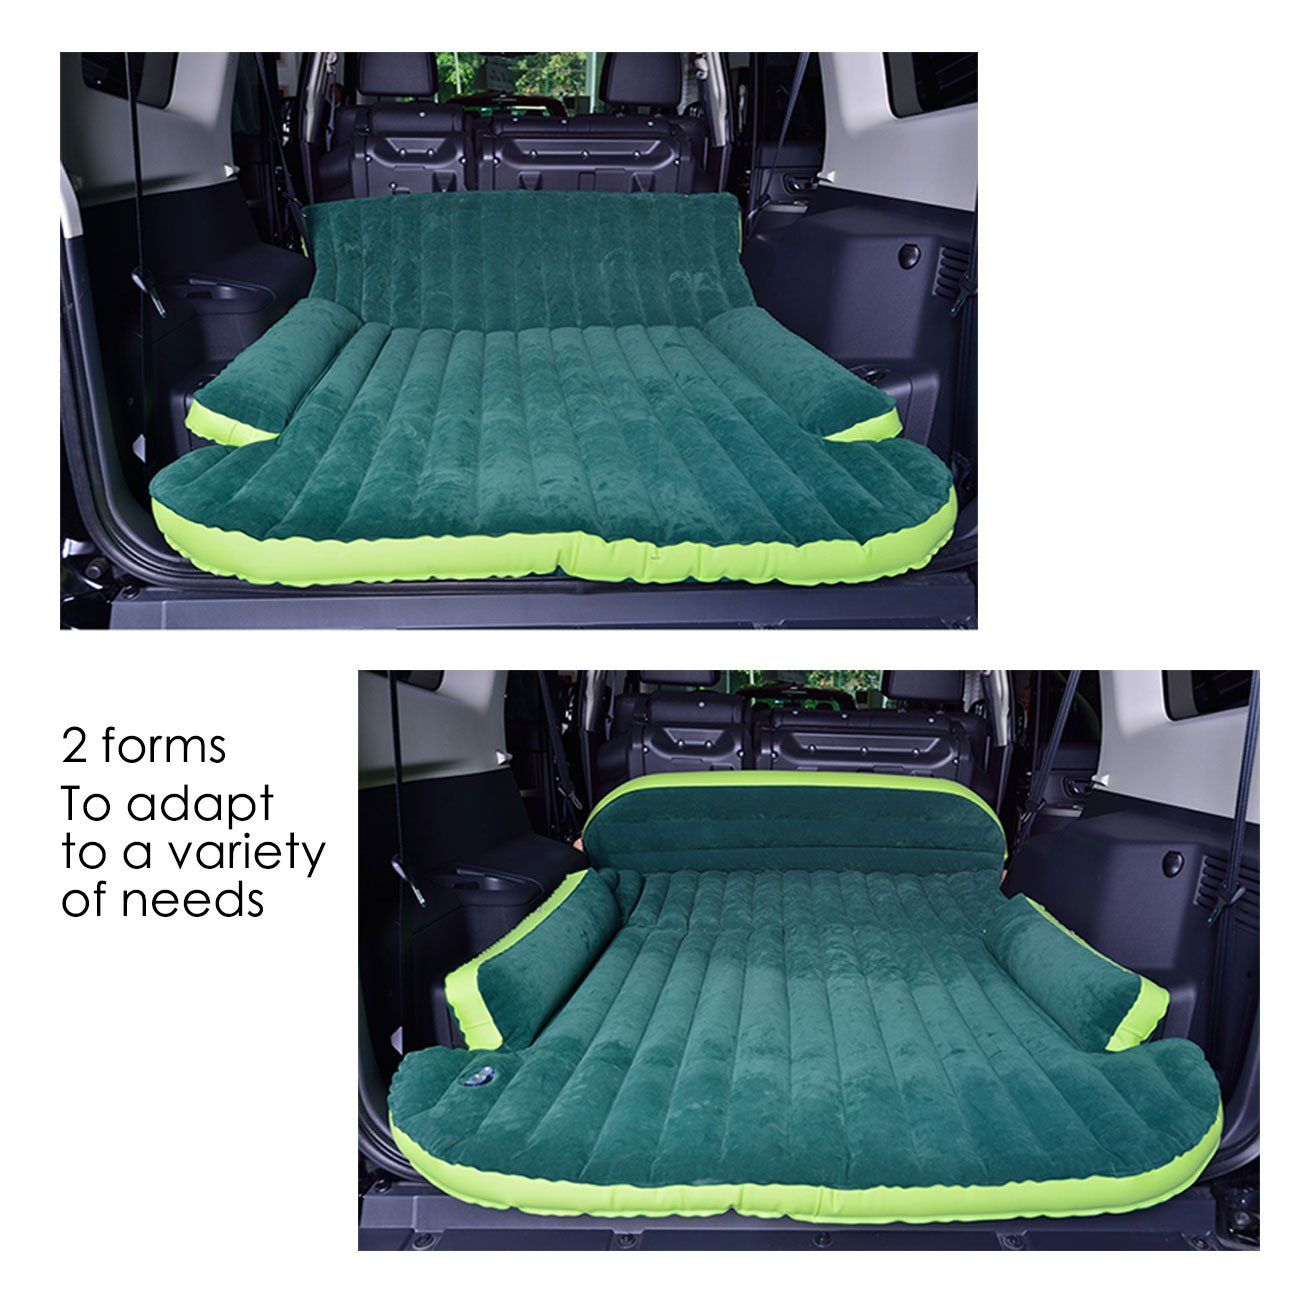 Amazon.com - OnlyTM SUV Dedicated Car Mobile Cushion Air Bed Bedroom Inflation Travel Thicker Mattress Back Seat Extended Mattress -